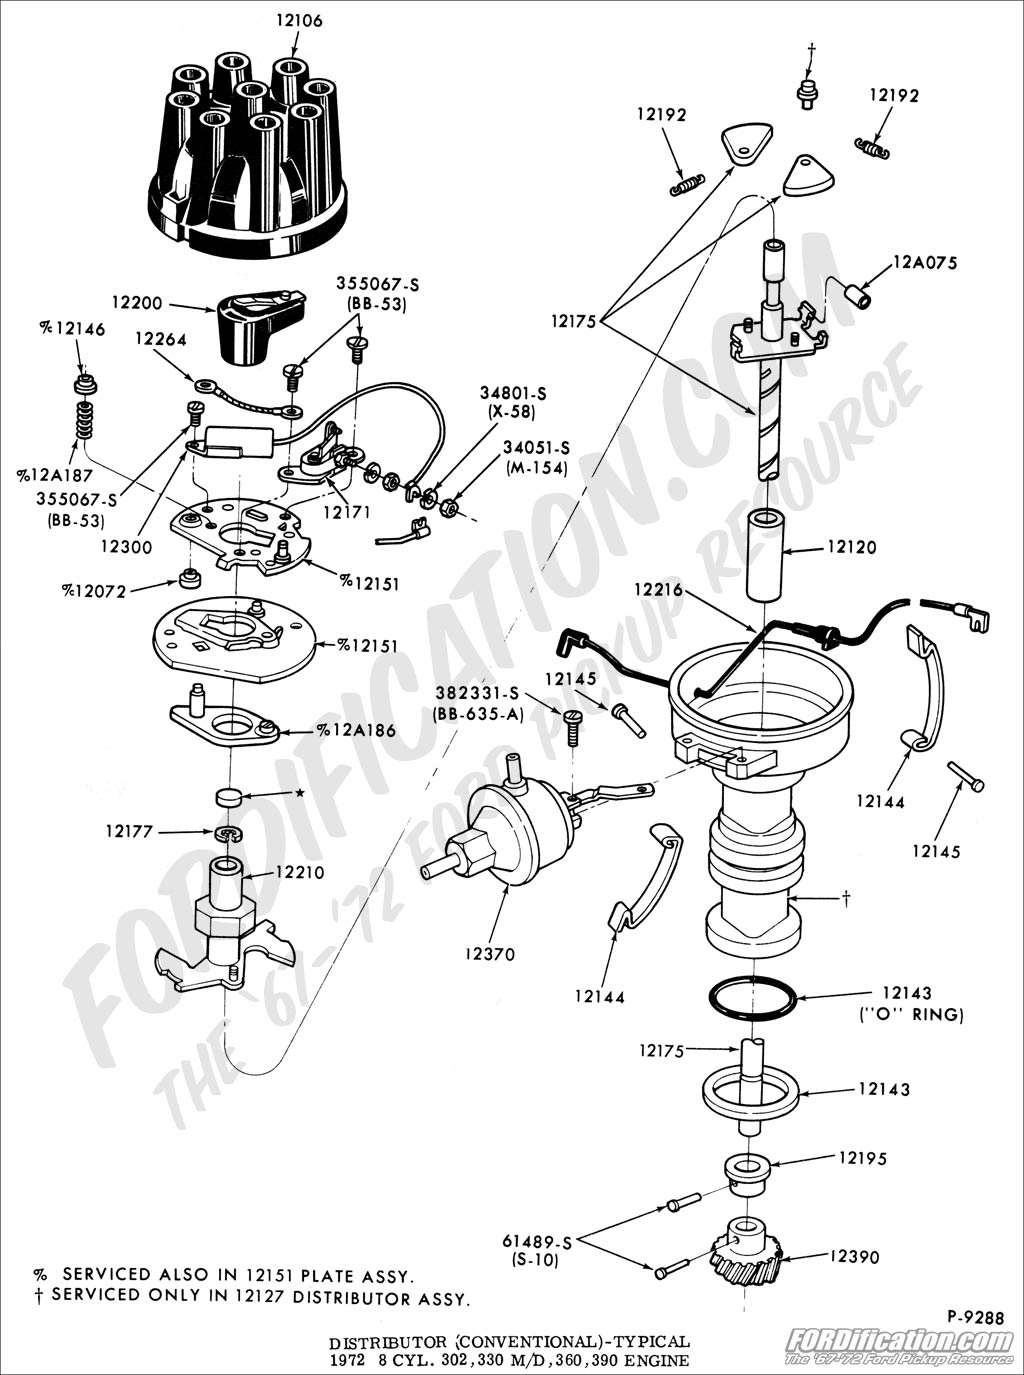 Ford Truck Technical Drawings And Schematics Section I 97 F150 Wiper Motor Wiring Diagram Electrical